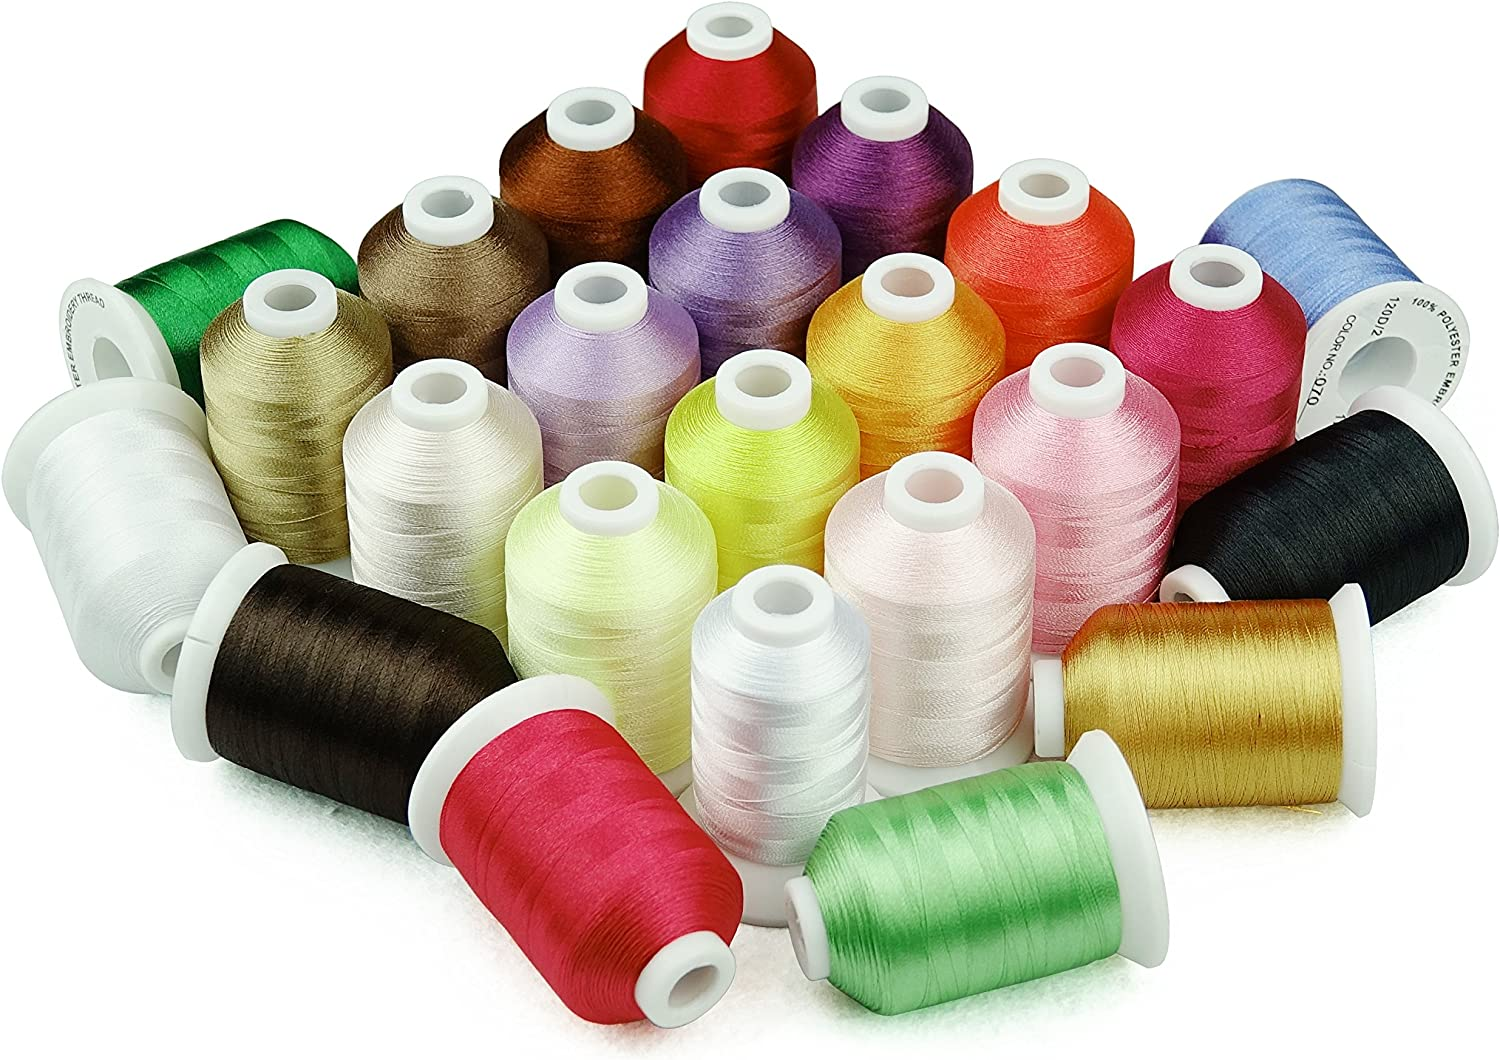 Simthread 63 Couleurs Polyester Broder pour Brother Machine 1000 m/ètres//Bobine